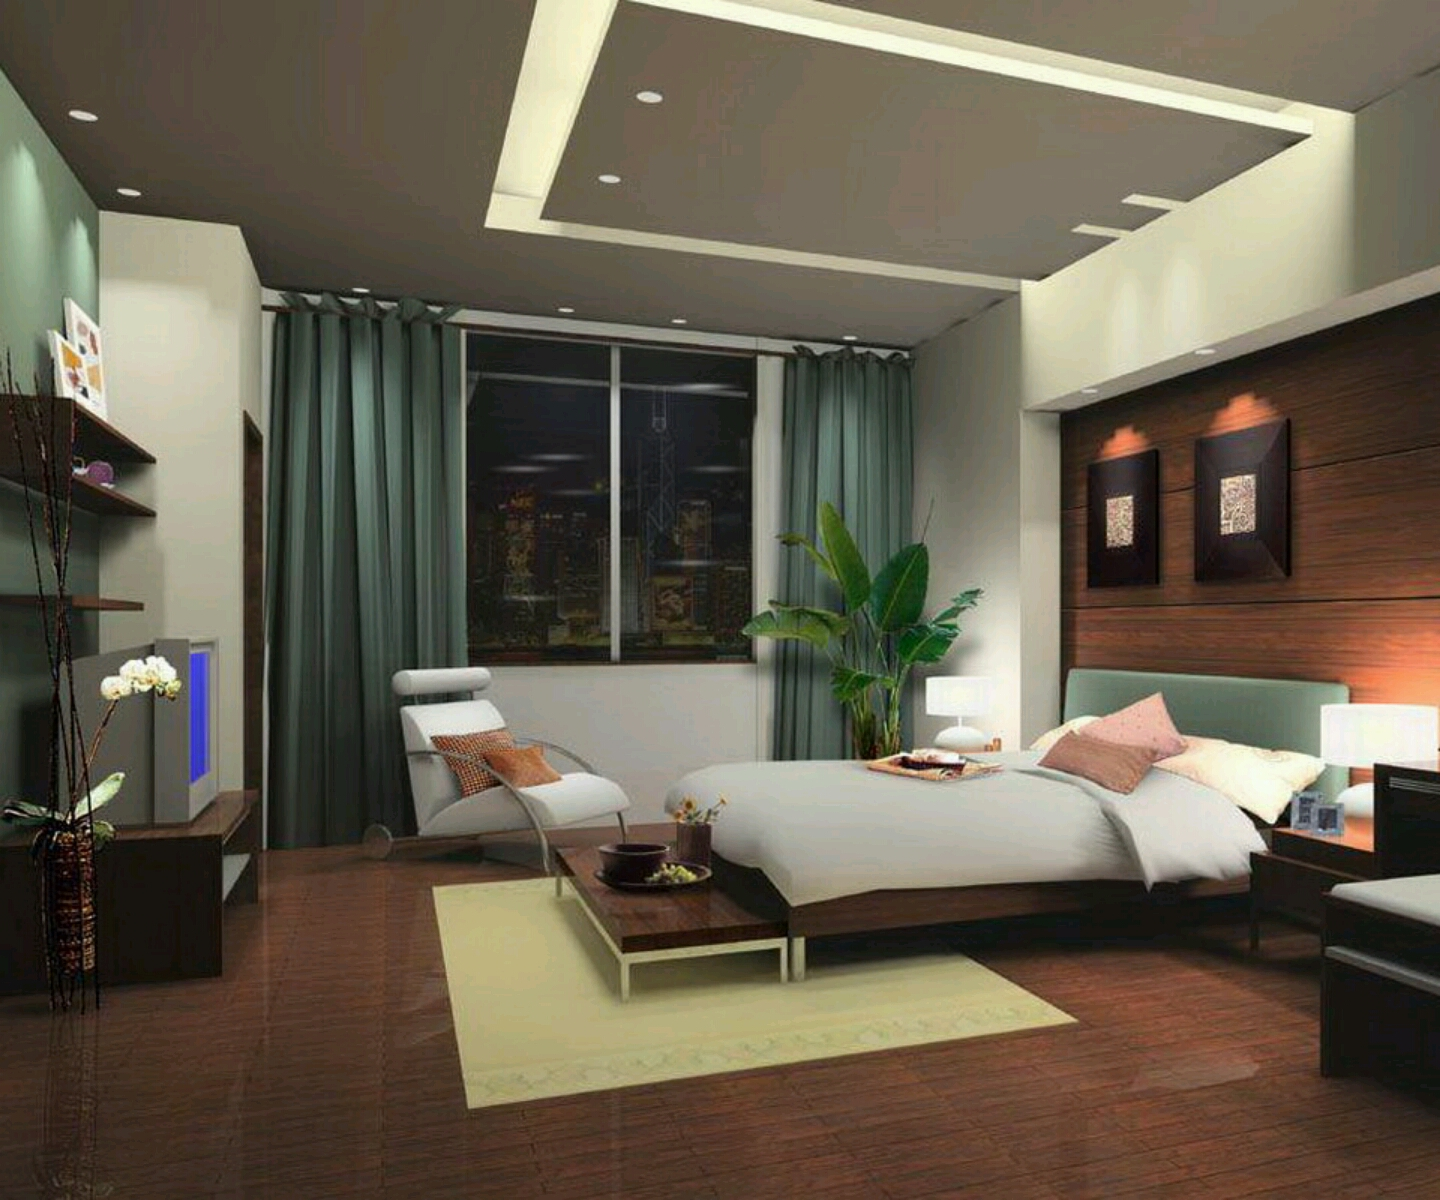 new home designs latest modern bedrooms designs best ideas ForBest Modern Bedrooms